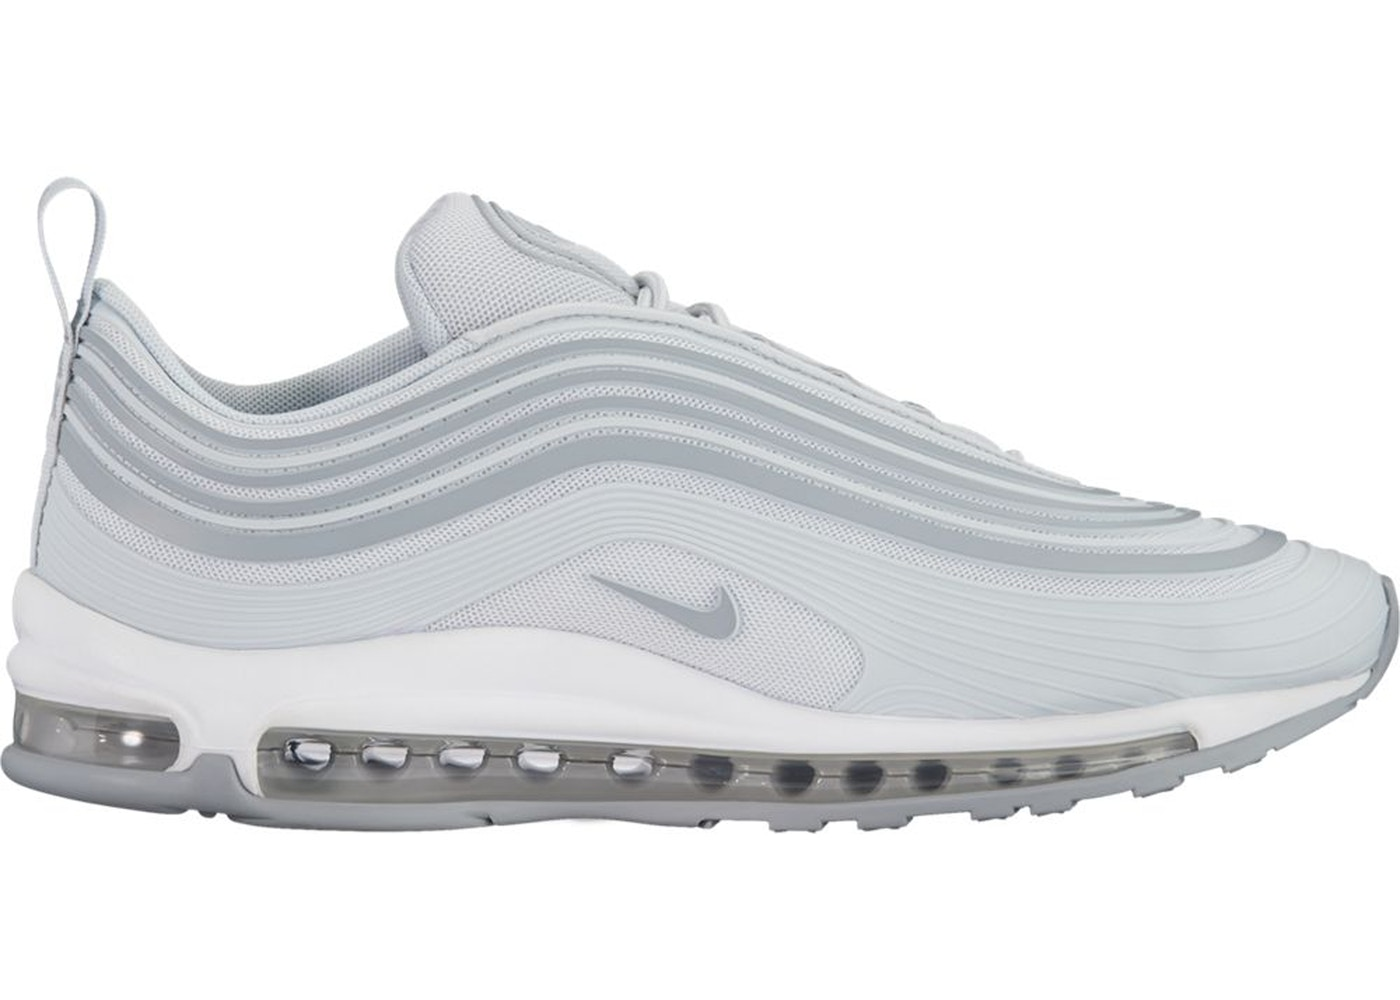 Air Max 97 Ultra 17 Pure Platinum Premium - AH7581-001 885aeb146